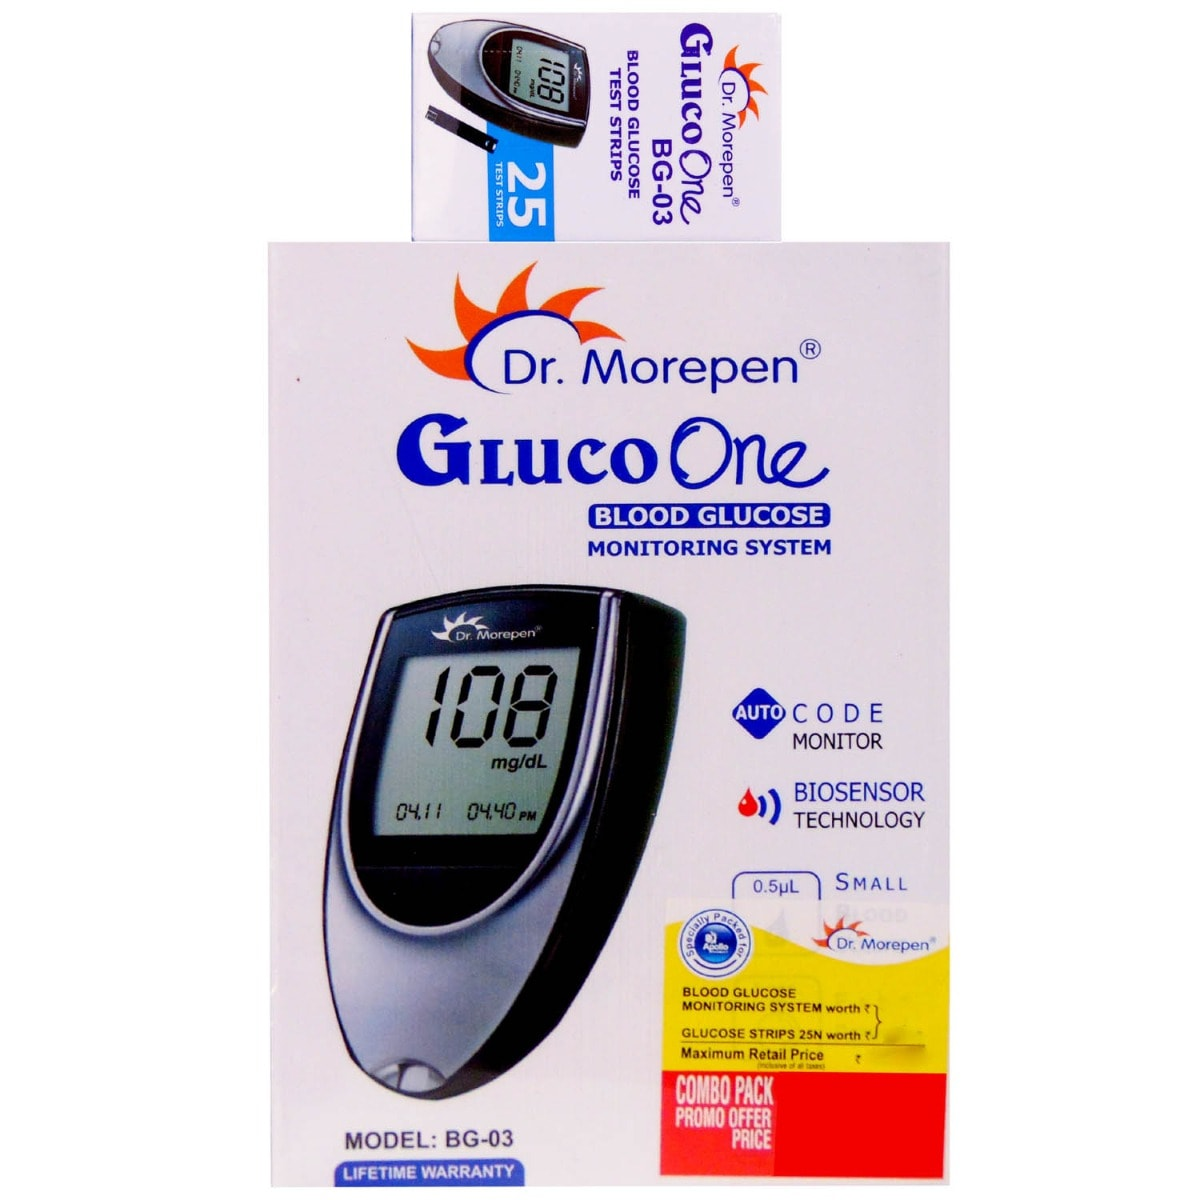 DR. Morepen Gluco One Blood Glucose Monitoring System BG-03, With 25 Free Test Strips, 1 kit